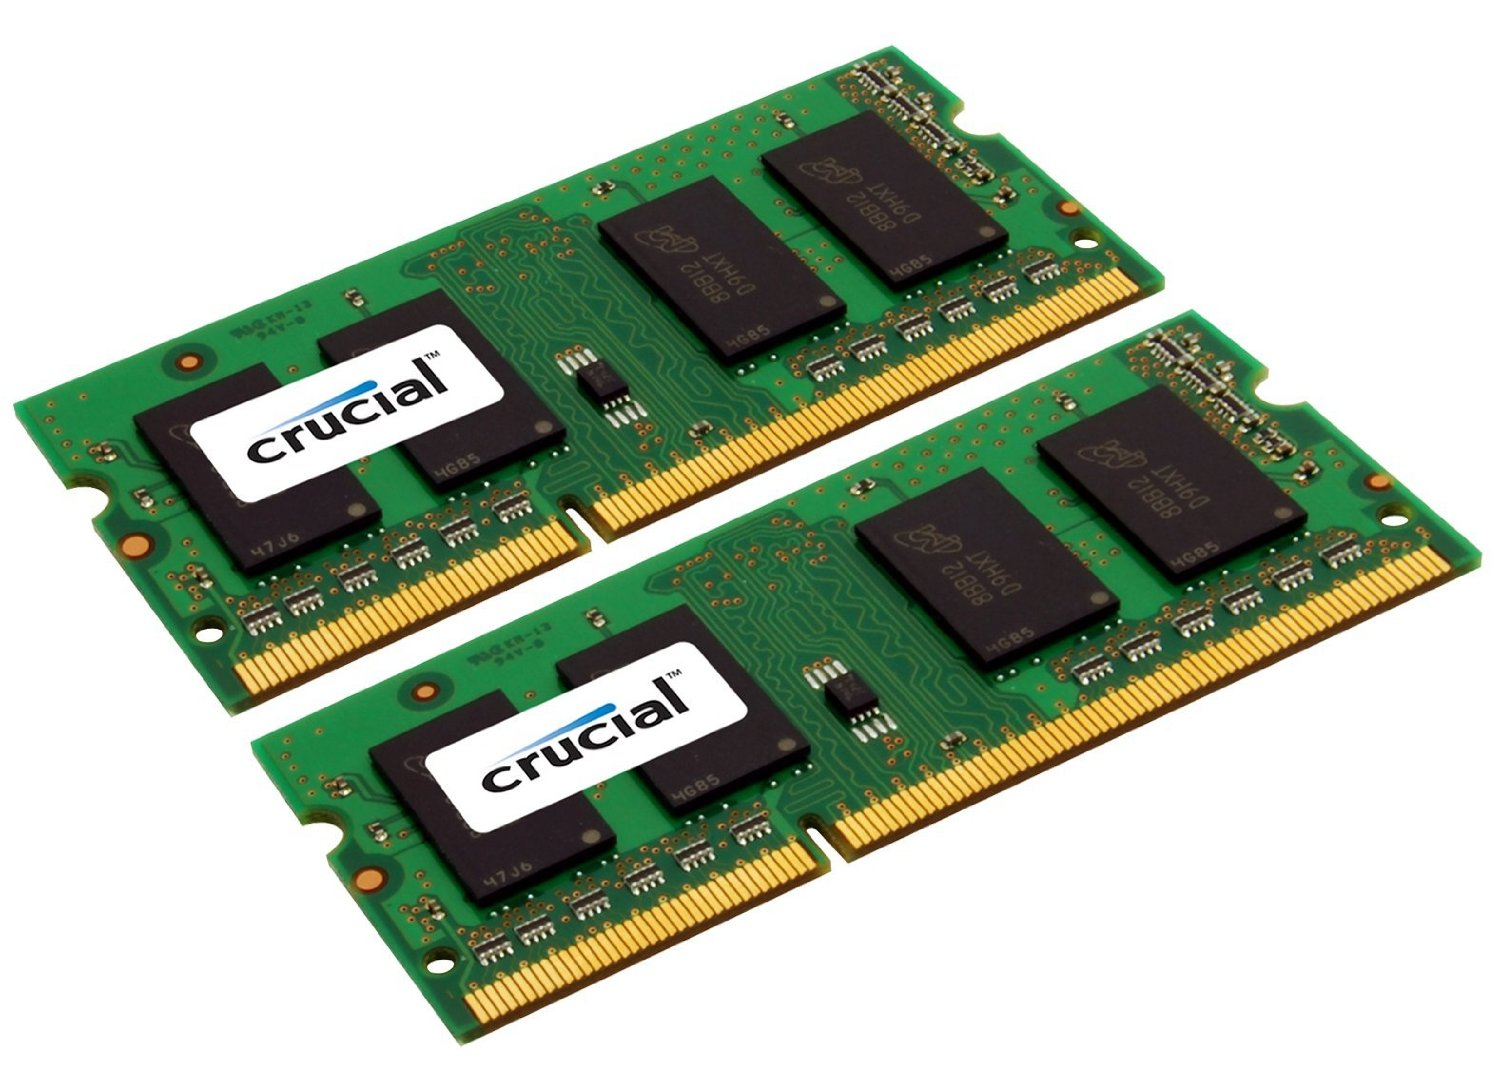 حافظه رم لپ تاپ - RAM کروشیال-Crucial  16GB Kit (8GBx2) DDR3/DDR3L 1600 MHz (PC3-12800) CL11 SODIMM